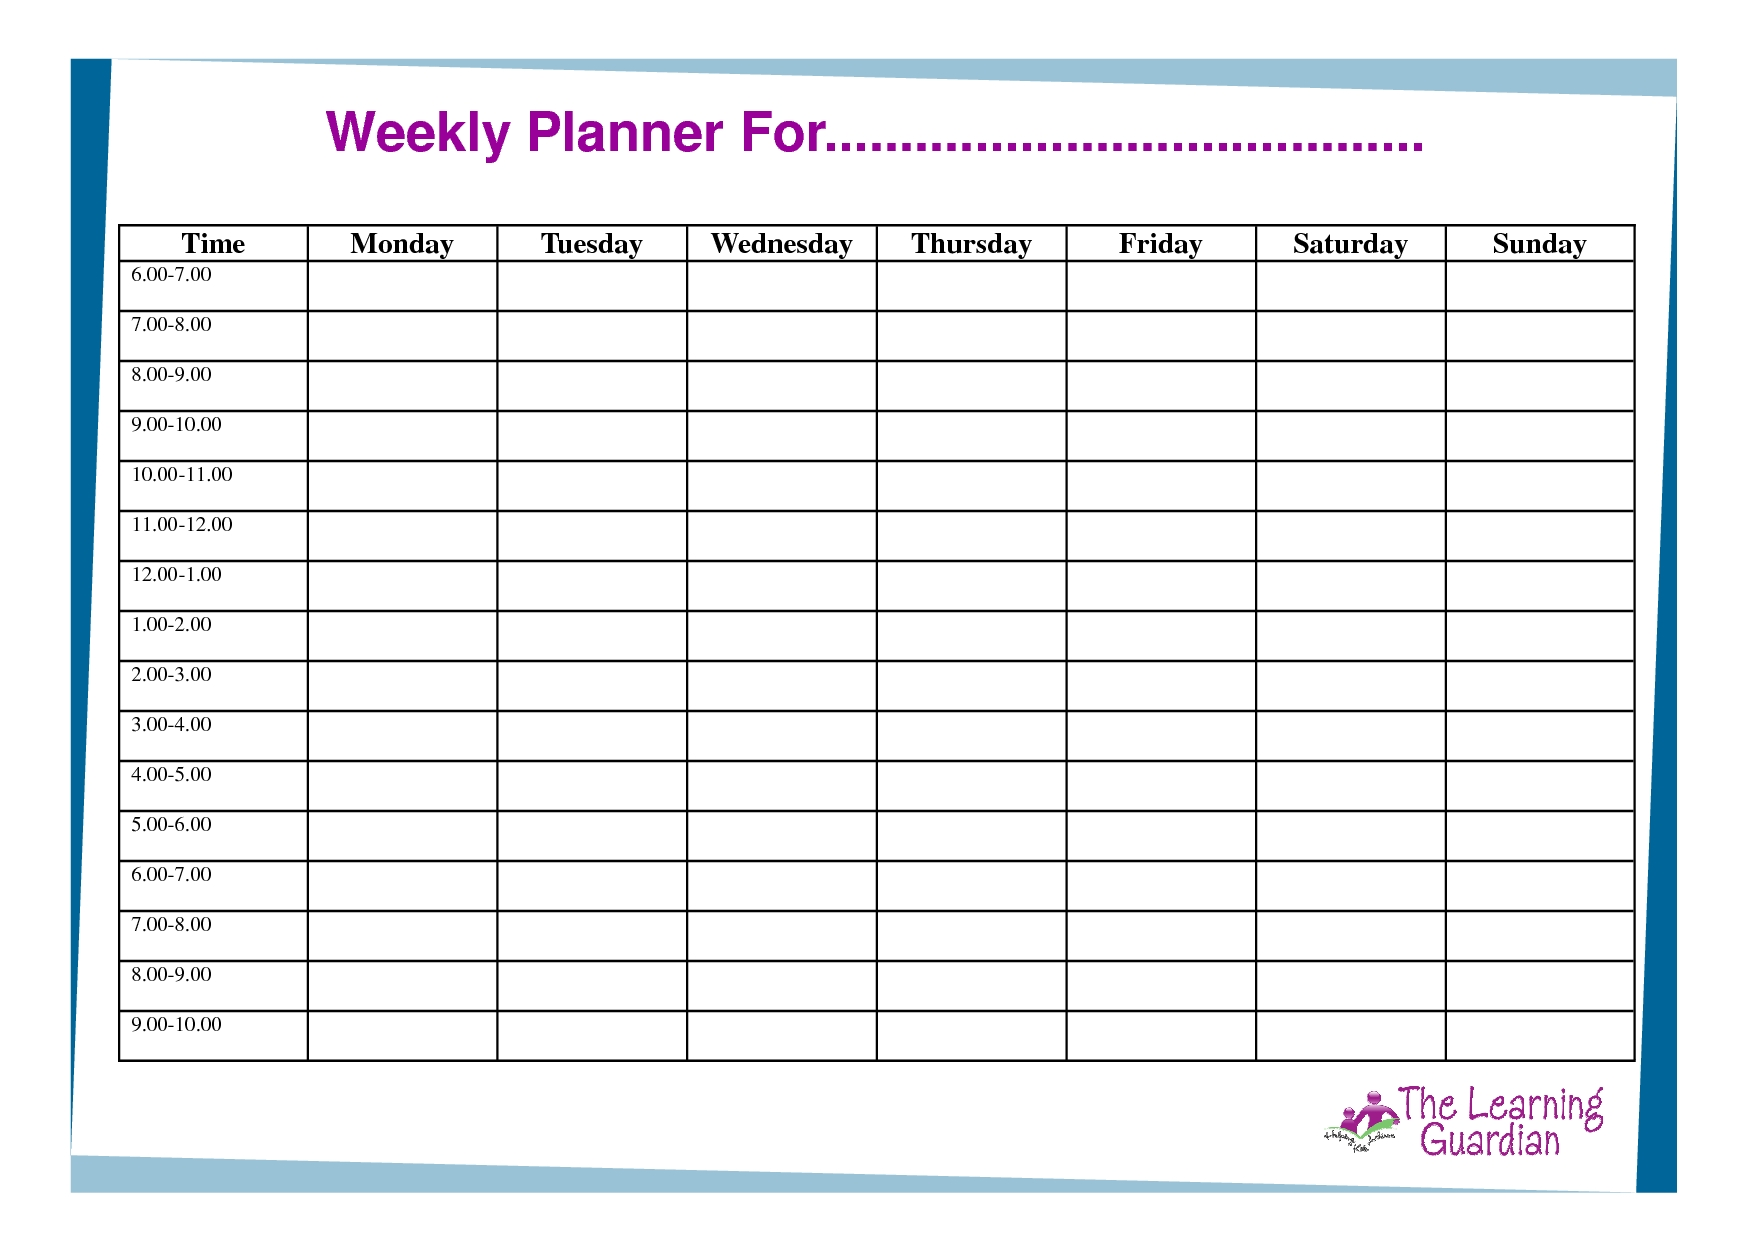 Printable Time Schedule Free Weekly Calendar Templates Planner For inside Printable Weekly Planner With Times